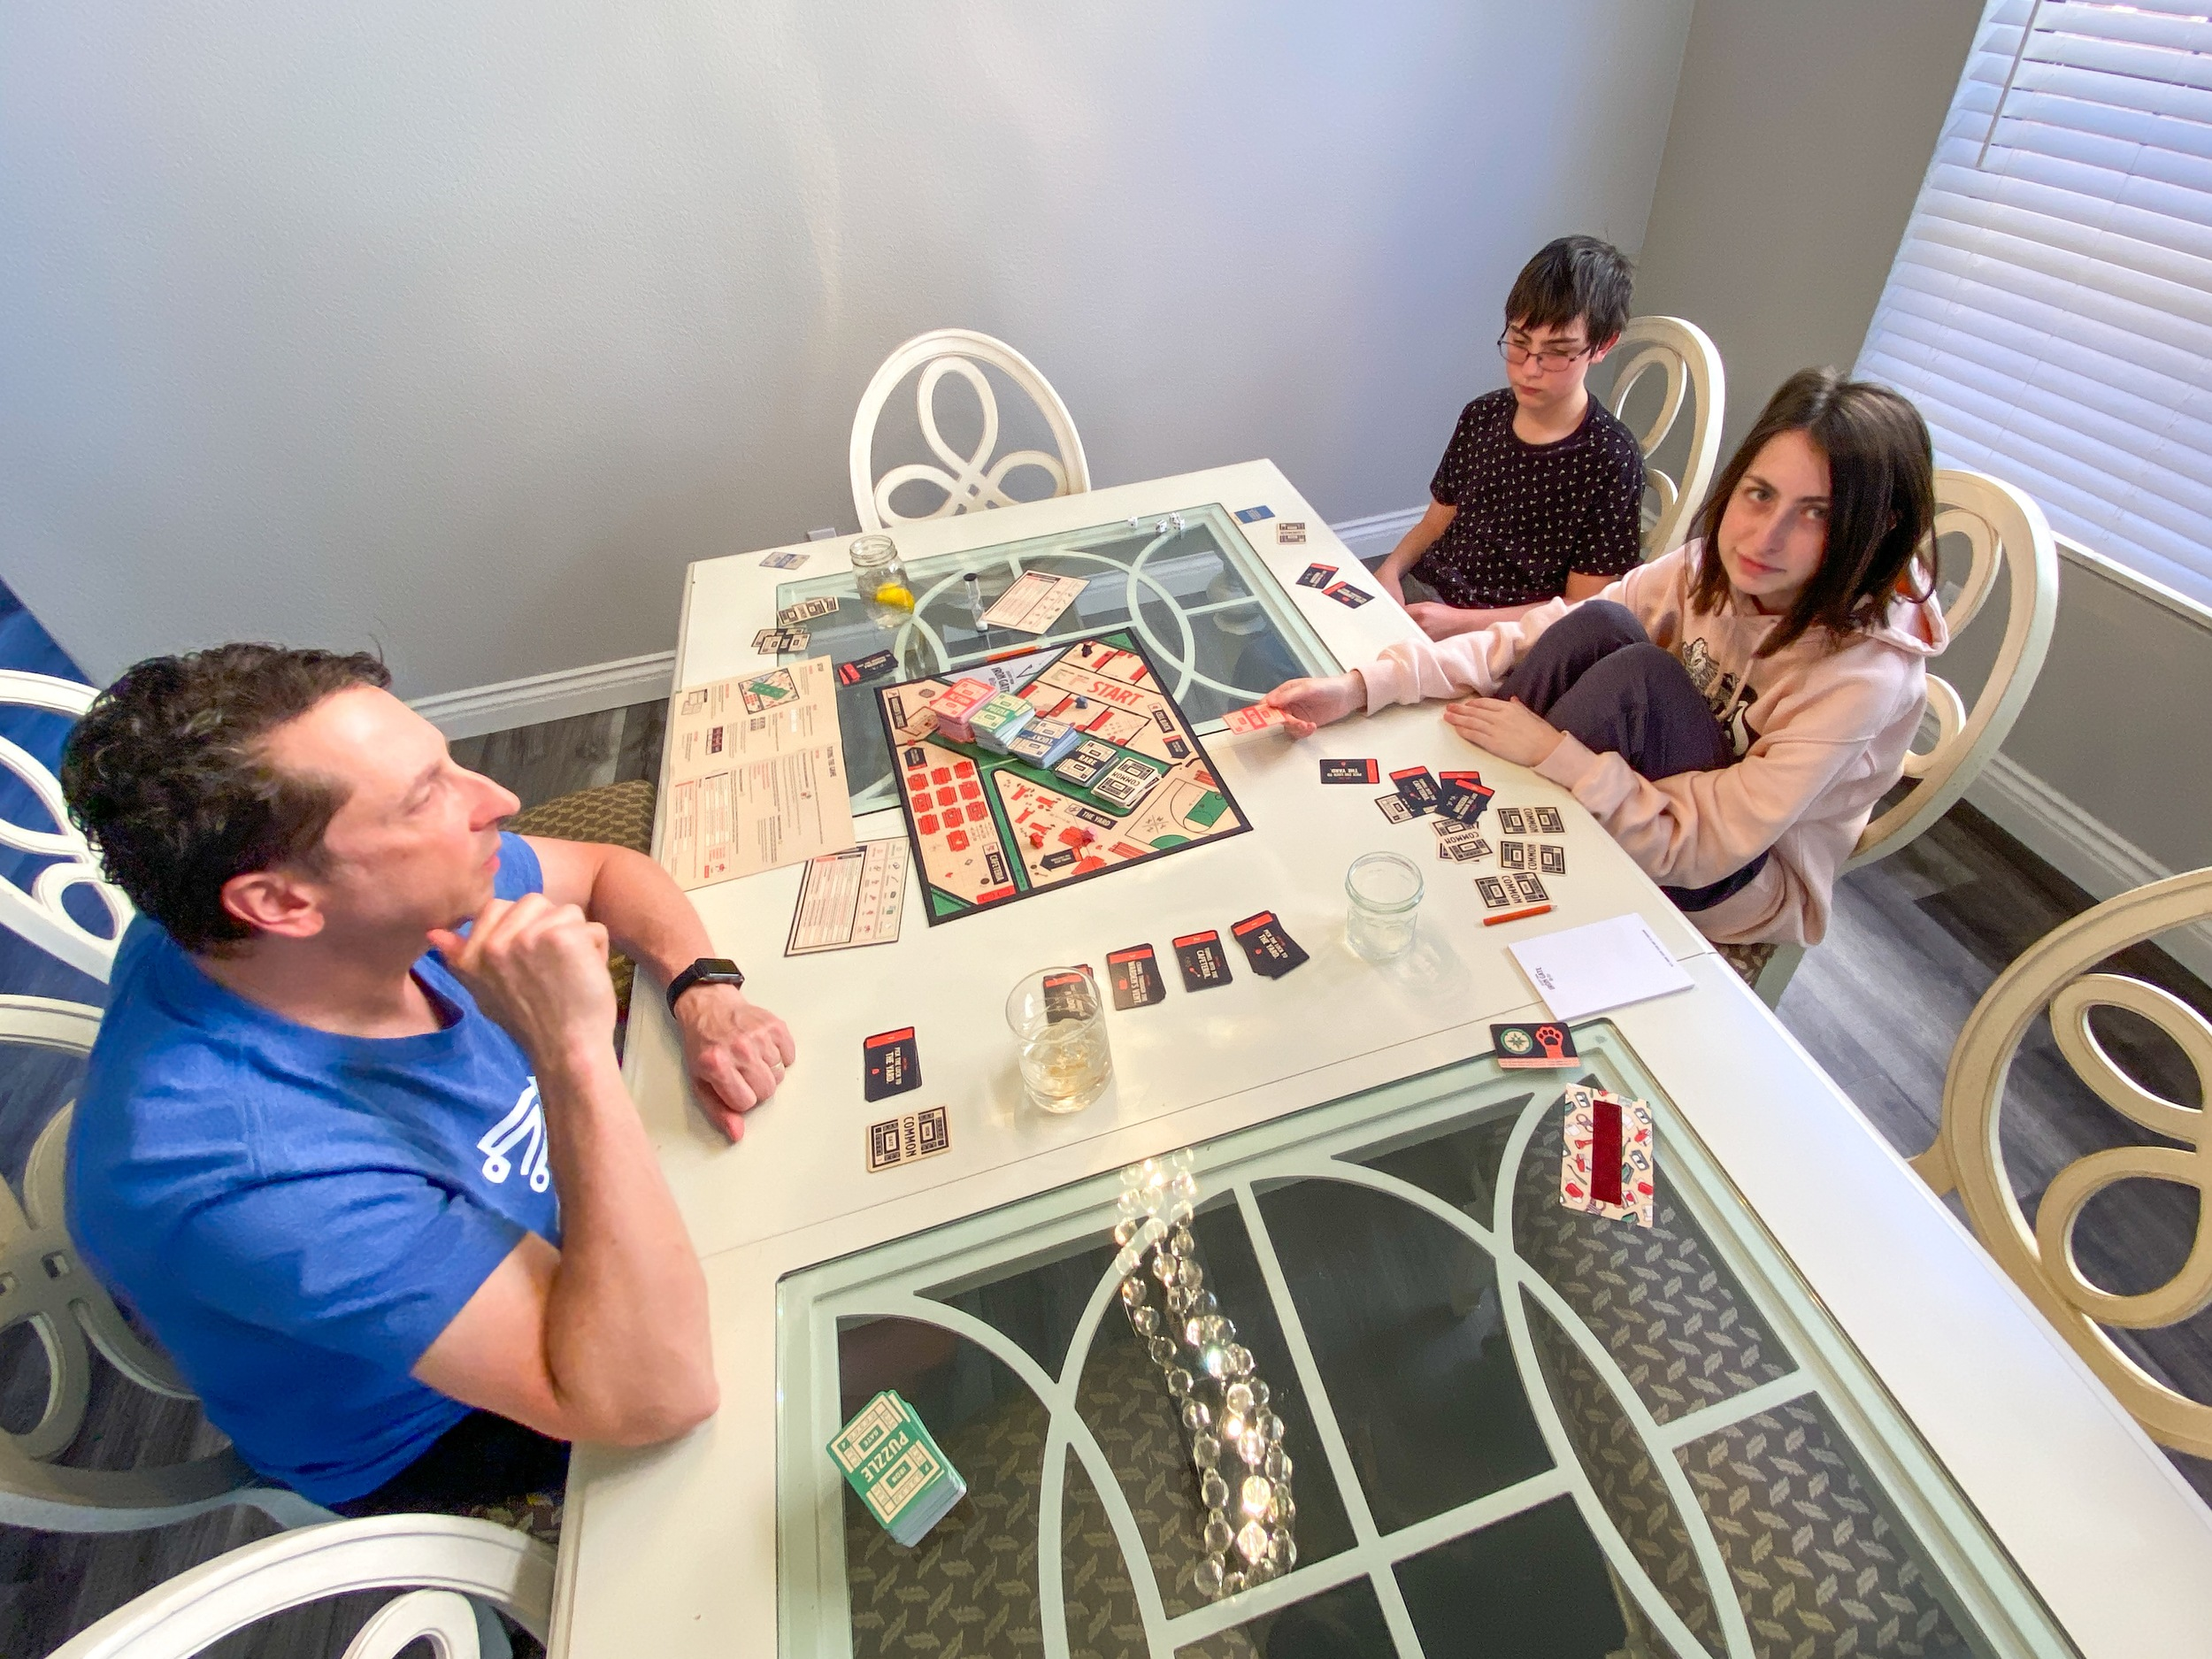 Family playing Escape from Iron Gate board game